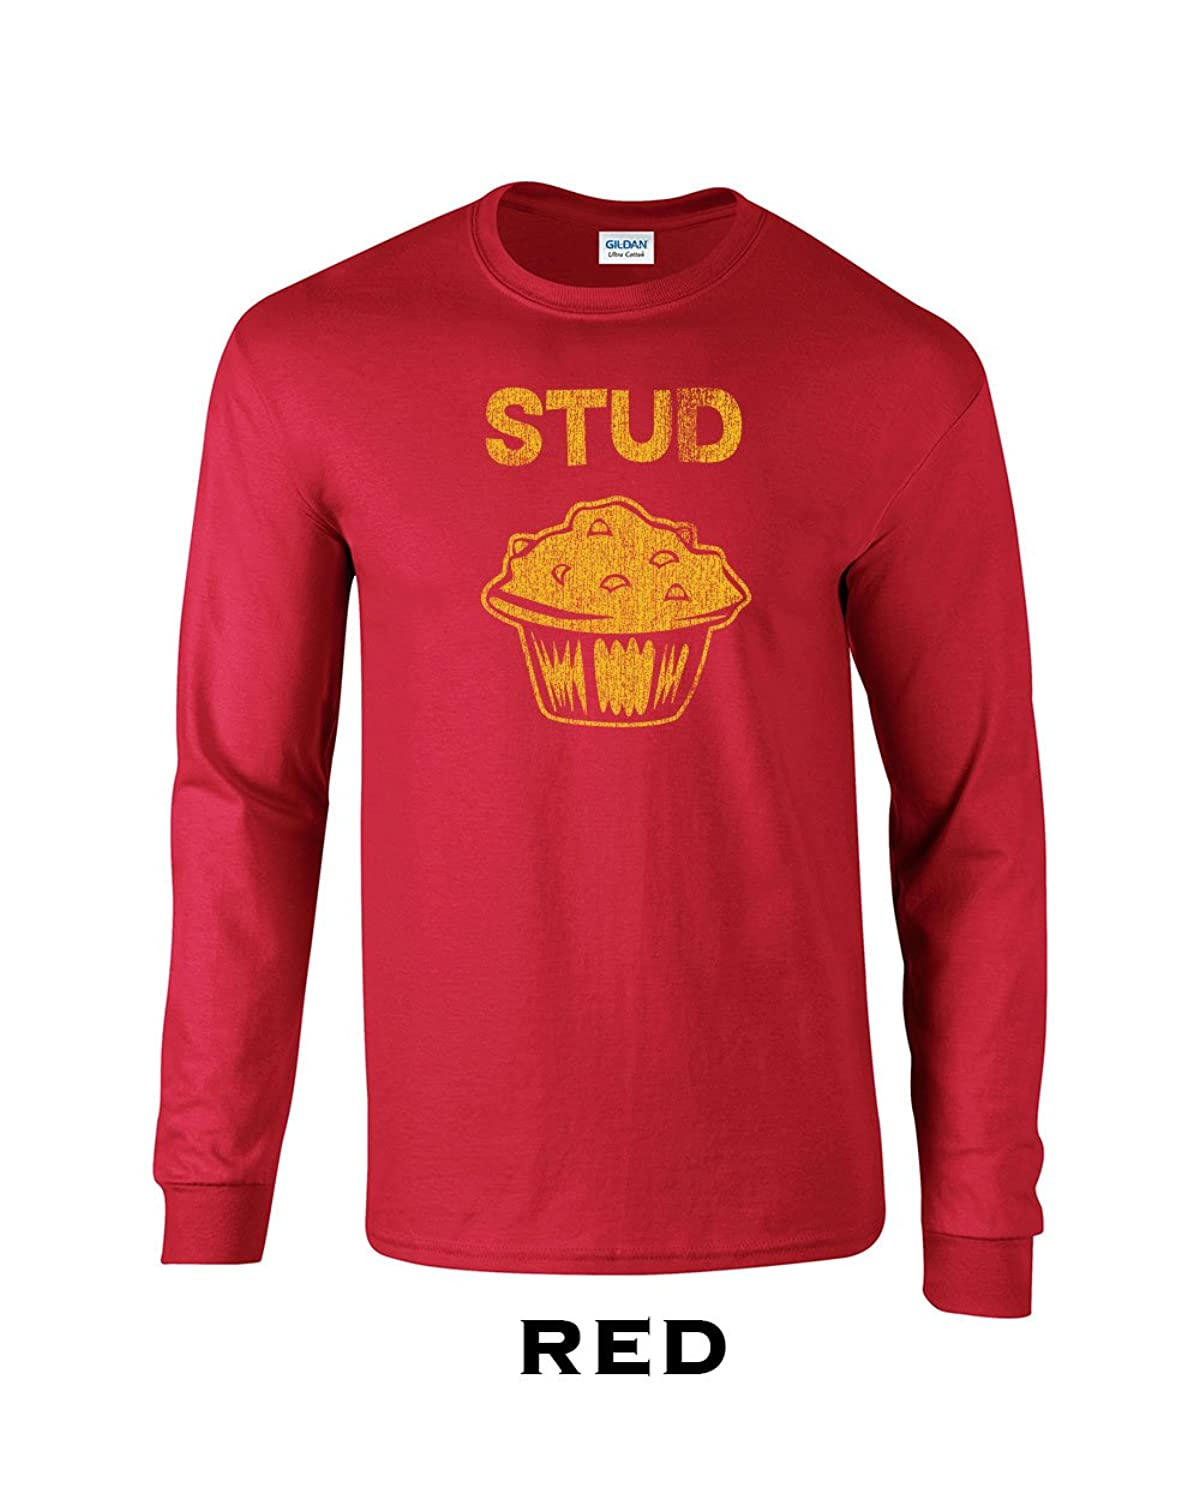 144 Stud Muffin Adult Long Sleeve T Shirt